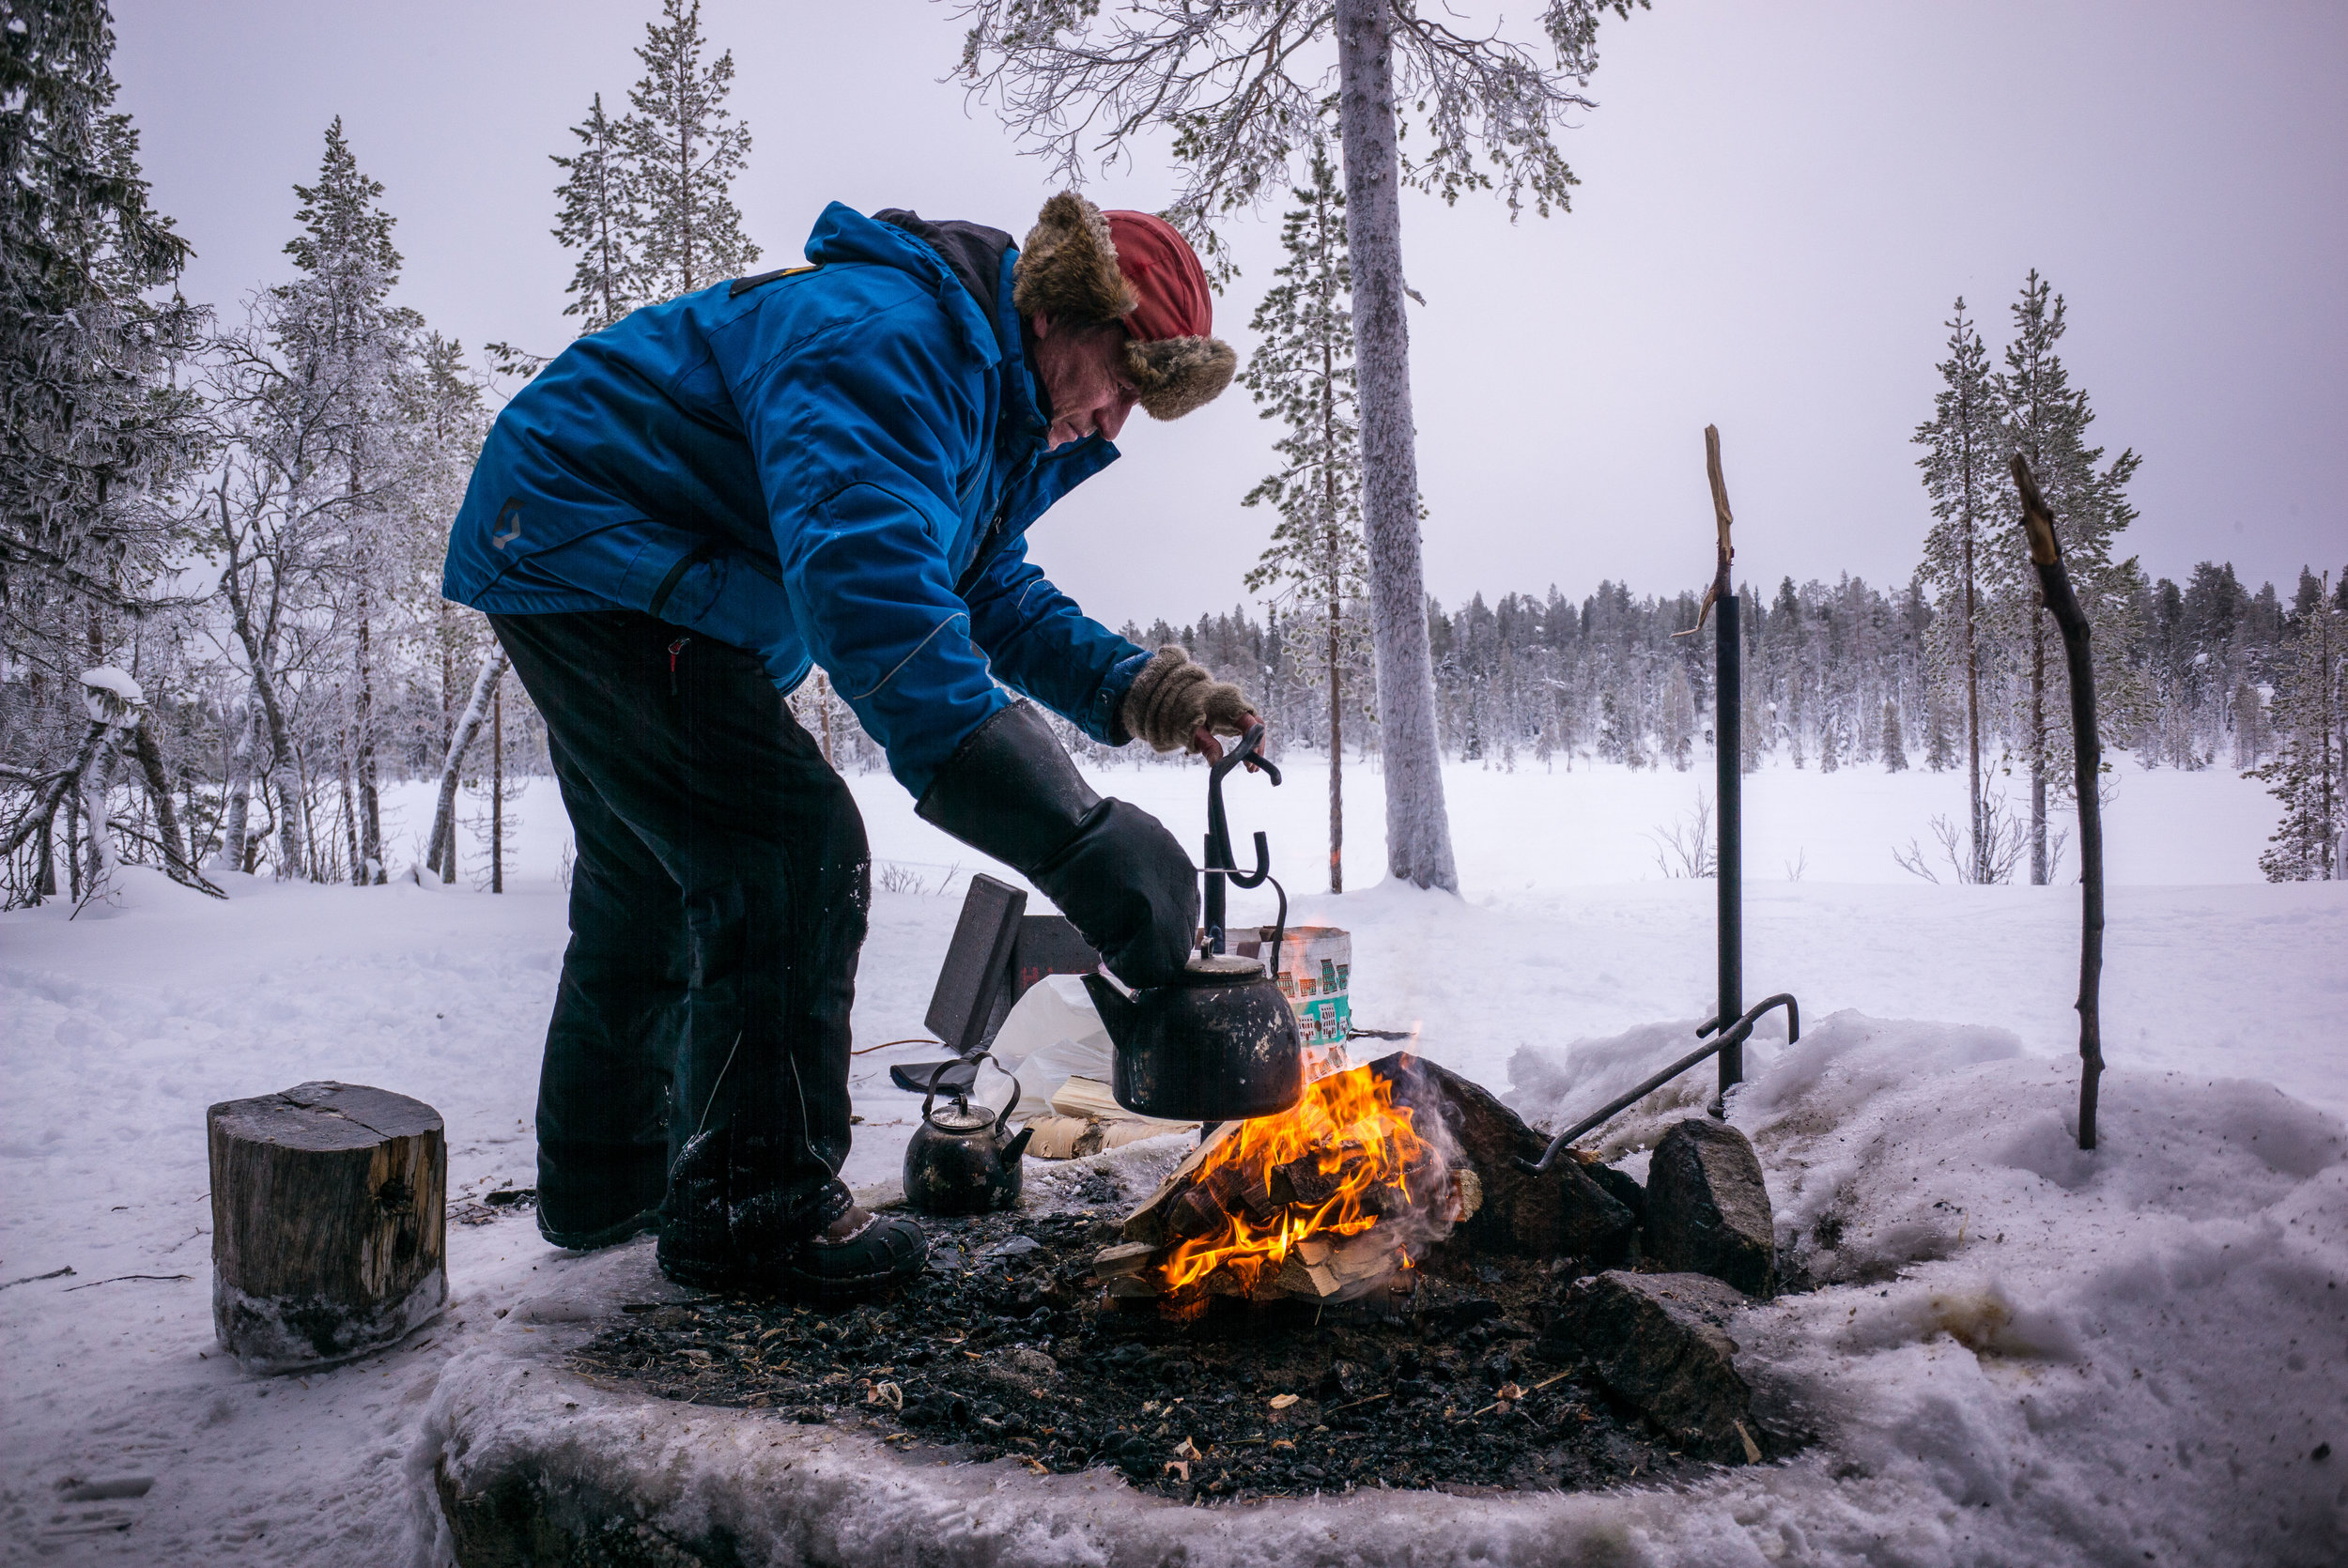 Lunch and coffee over a fire in the middle of the wilderness